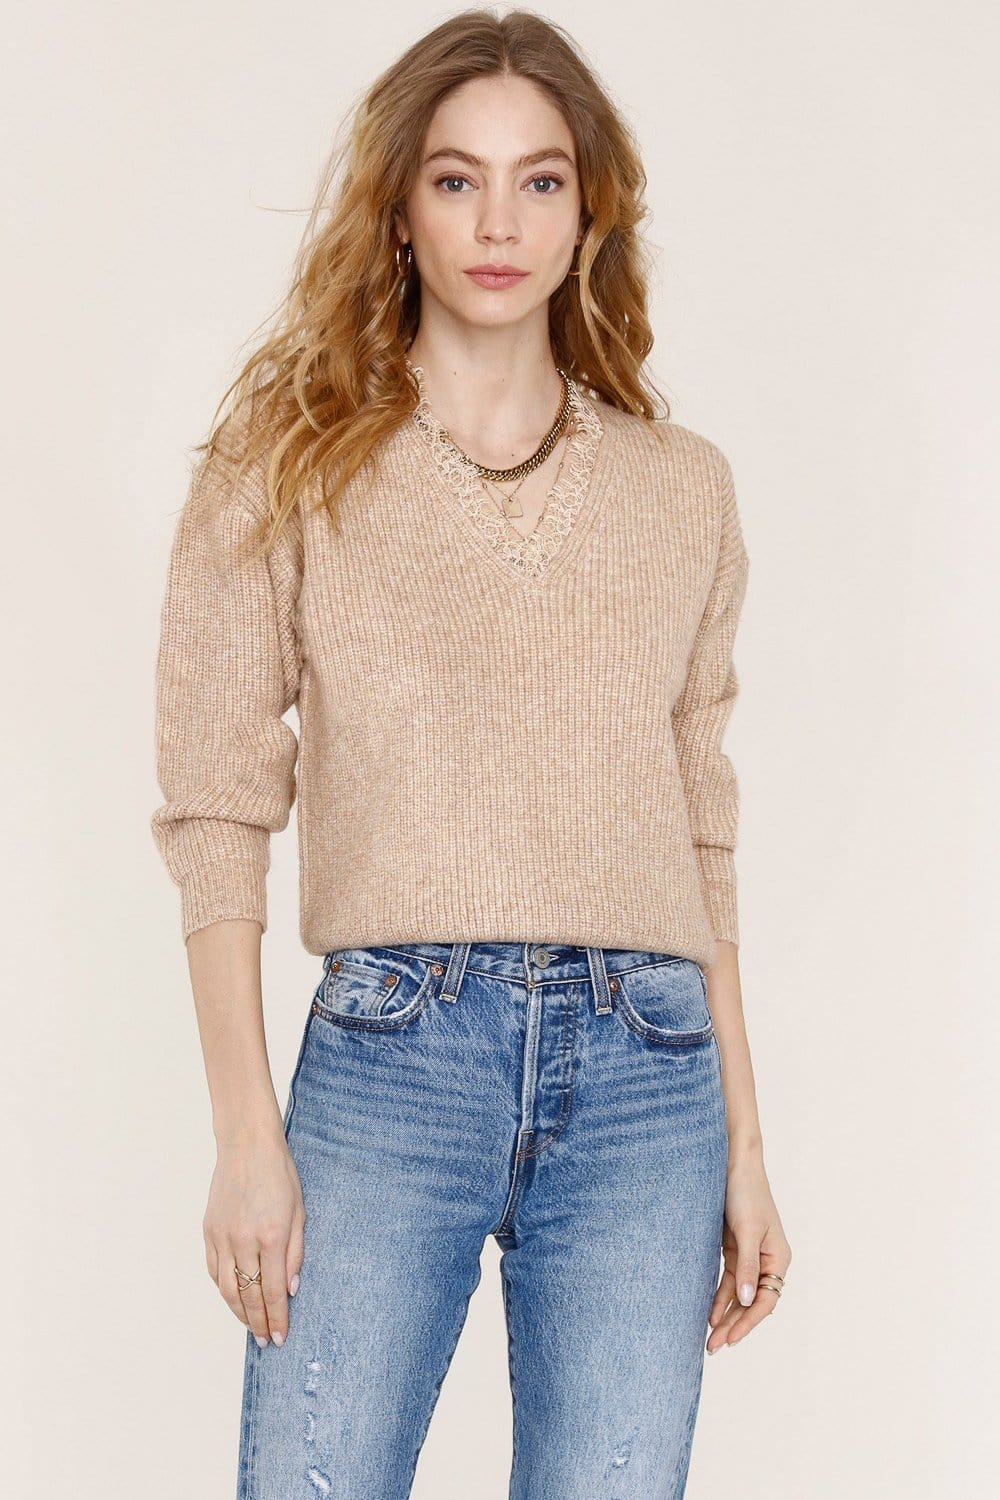 Heartloom Meris Sweater